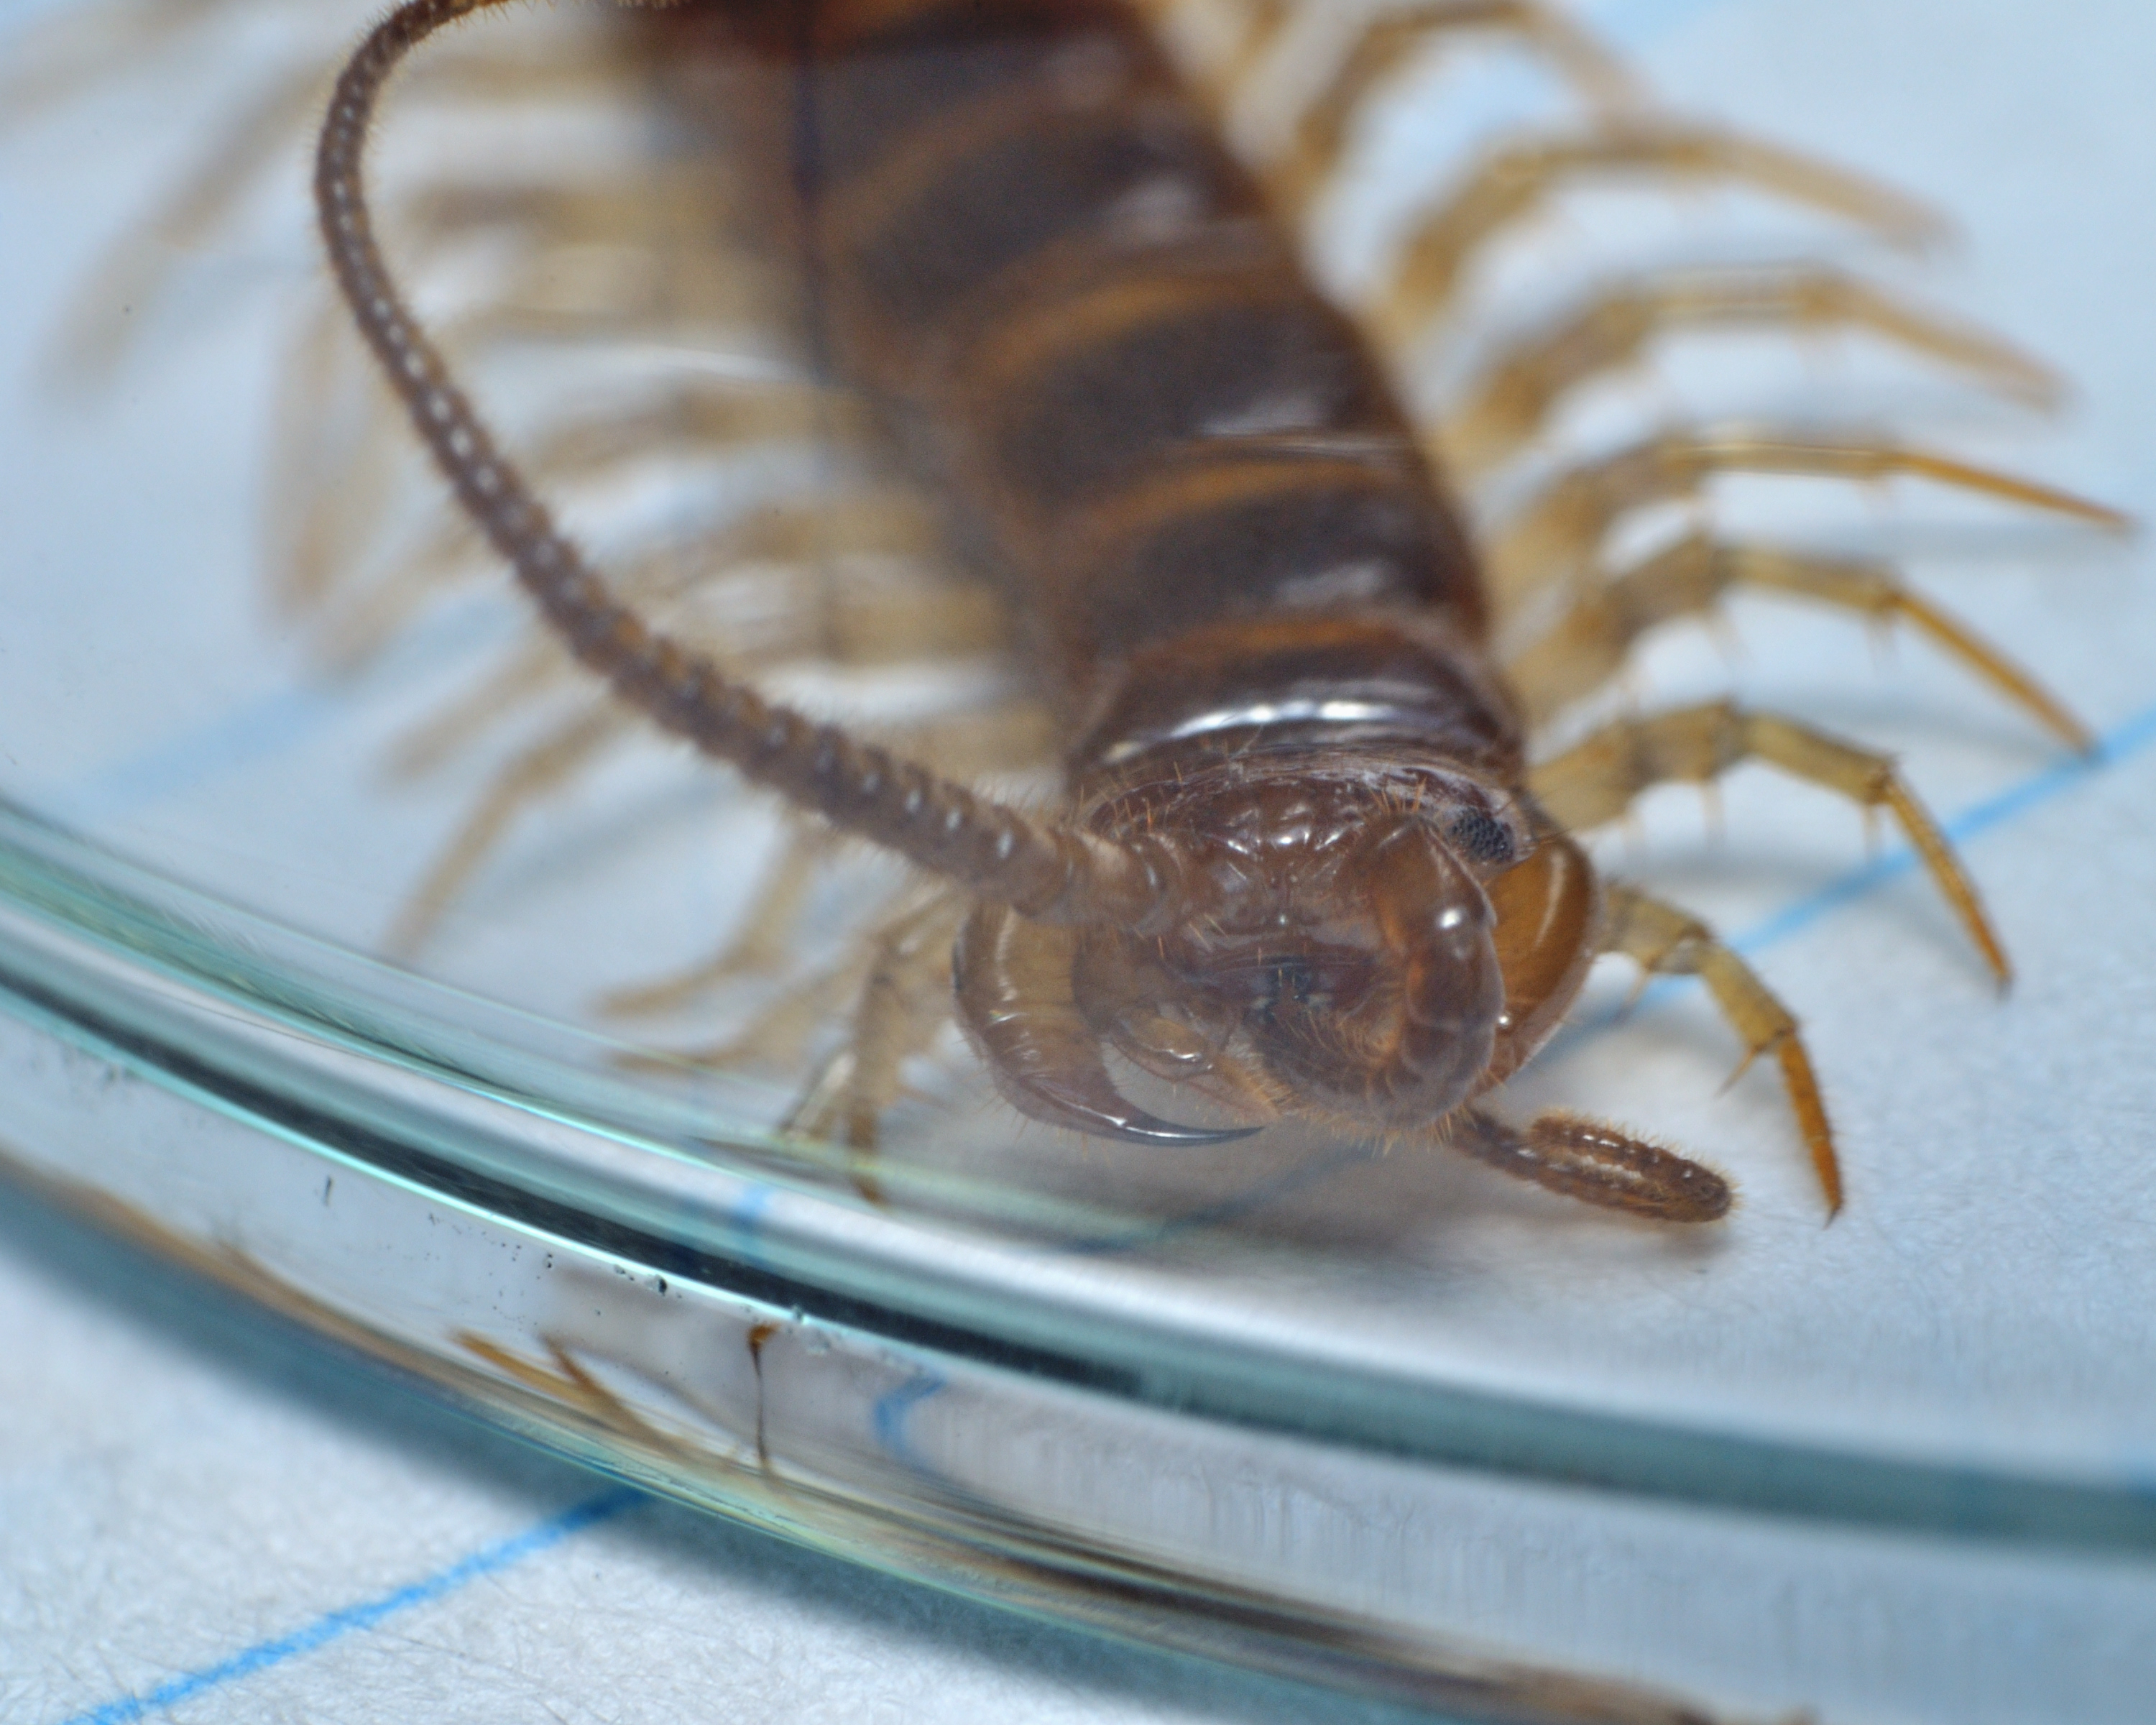 A centipede is trapped under a drinking glass, resting on an index card with blue line running underneath it. The centipede has one antenna contorted between its mandibles, perhaps cleaning itself.